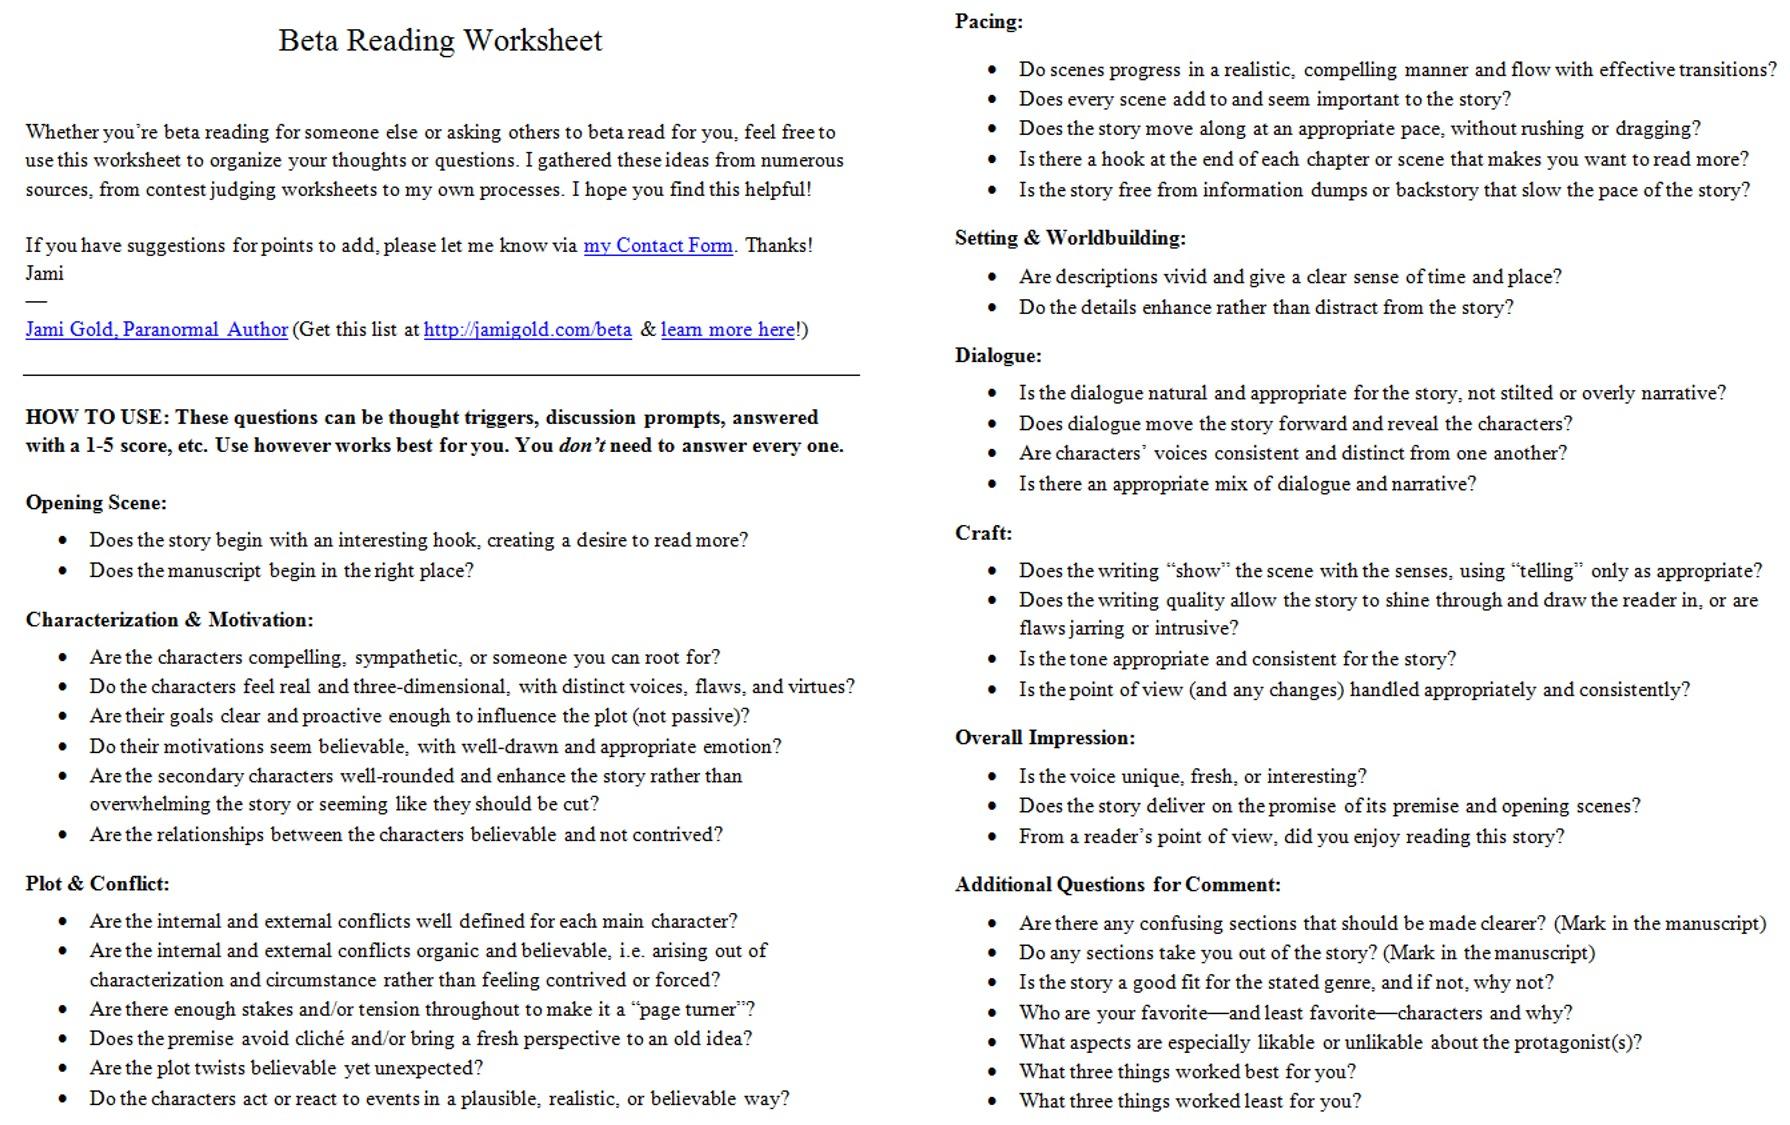 Weirdmailus  Seductive Worksheets For Writers  Jami Gold Paranormal Author With Gorgeous Screen Shot Of The Twopage Beta Reading Worksheet With Beautiful Punctuate Sentences Worksheet Also Free Main Idea Worksheets Th Grade In Addition Sequence A Story Worksheet And December Math Worksheets As Well As Family Facts Worksheets Additionally Shapes Worksheets Kids From Jamigoldcom With Weirdmailus  Gorgeous Worksheets For Writers  Jami Gold Paranormal Author With Beautiful Screen Shot Of The Twopage Beta Reading Worksheet And Seductive Punctuate Sentences Worksheet Also Free Main Idea Worksheets Th Grade In Addition Sequence A Story Worksheet From Jamigoldcom